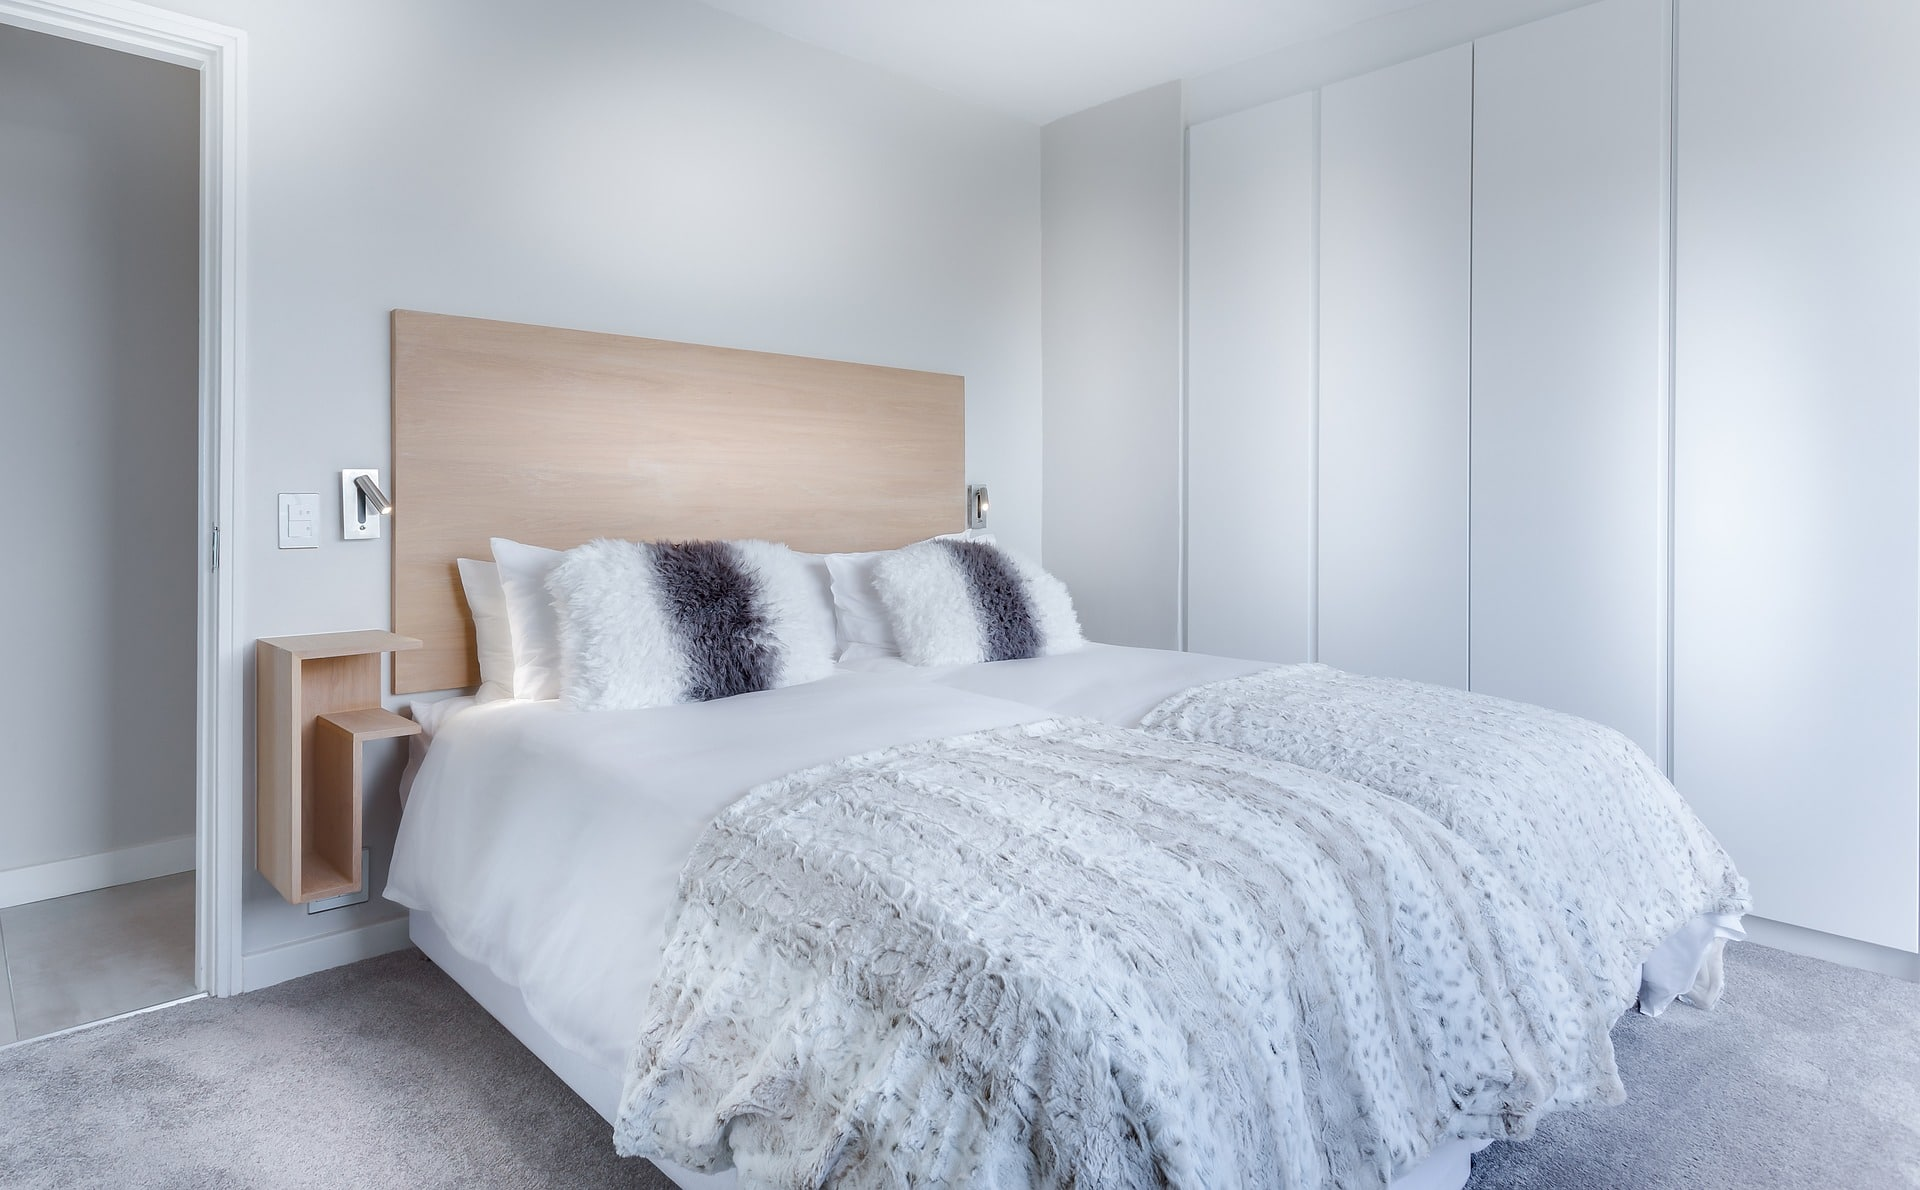 Bed linen cleaning in Toronto